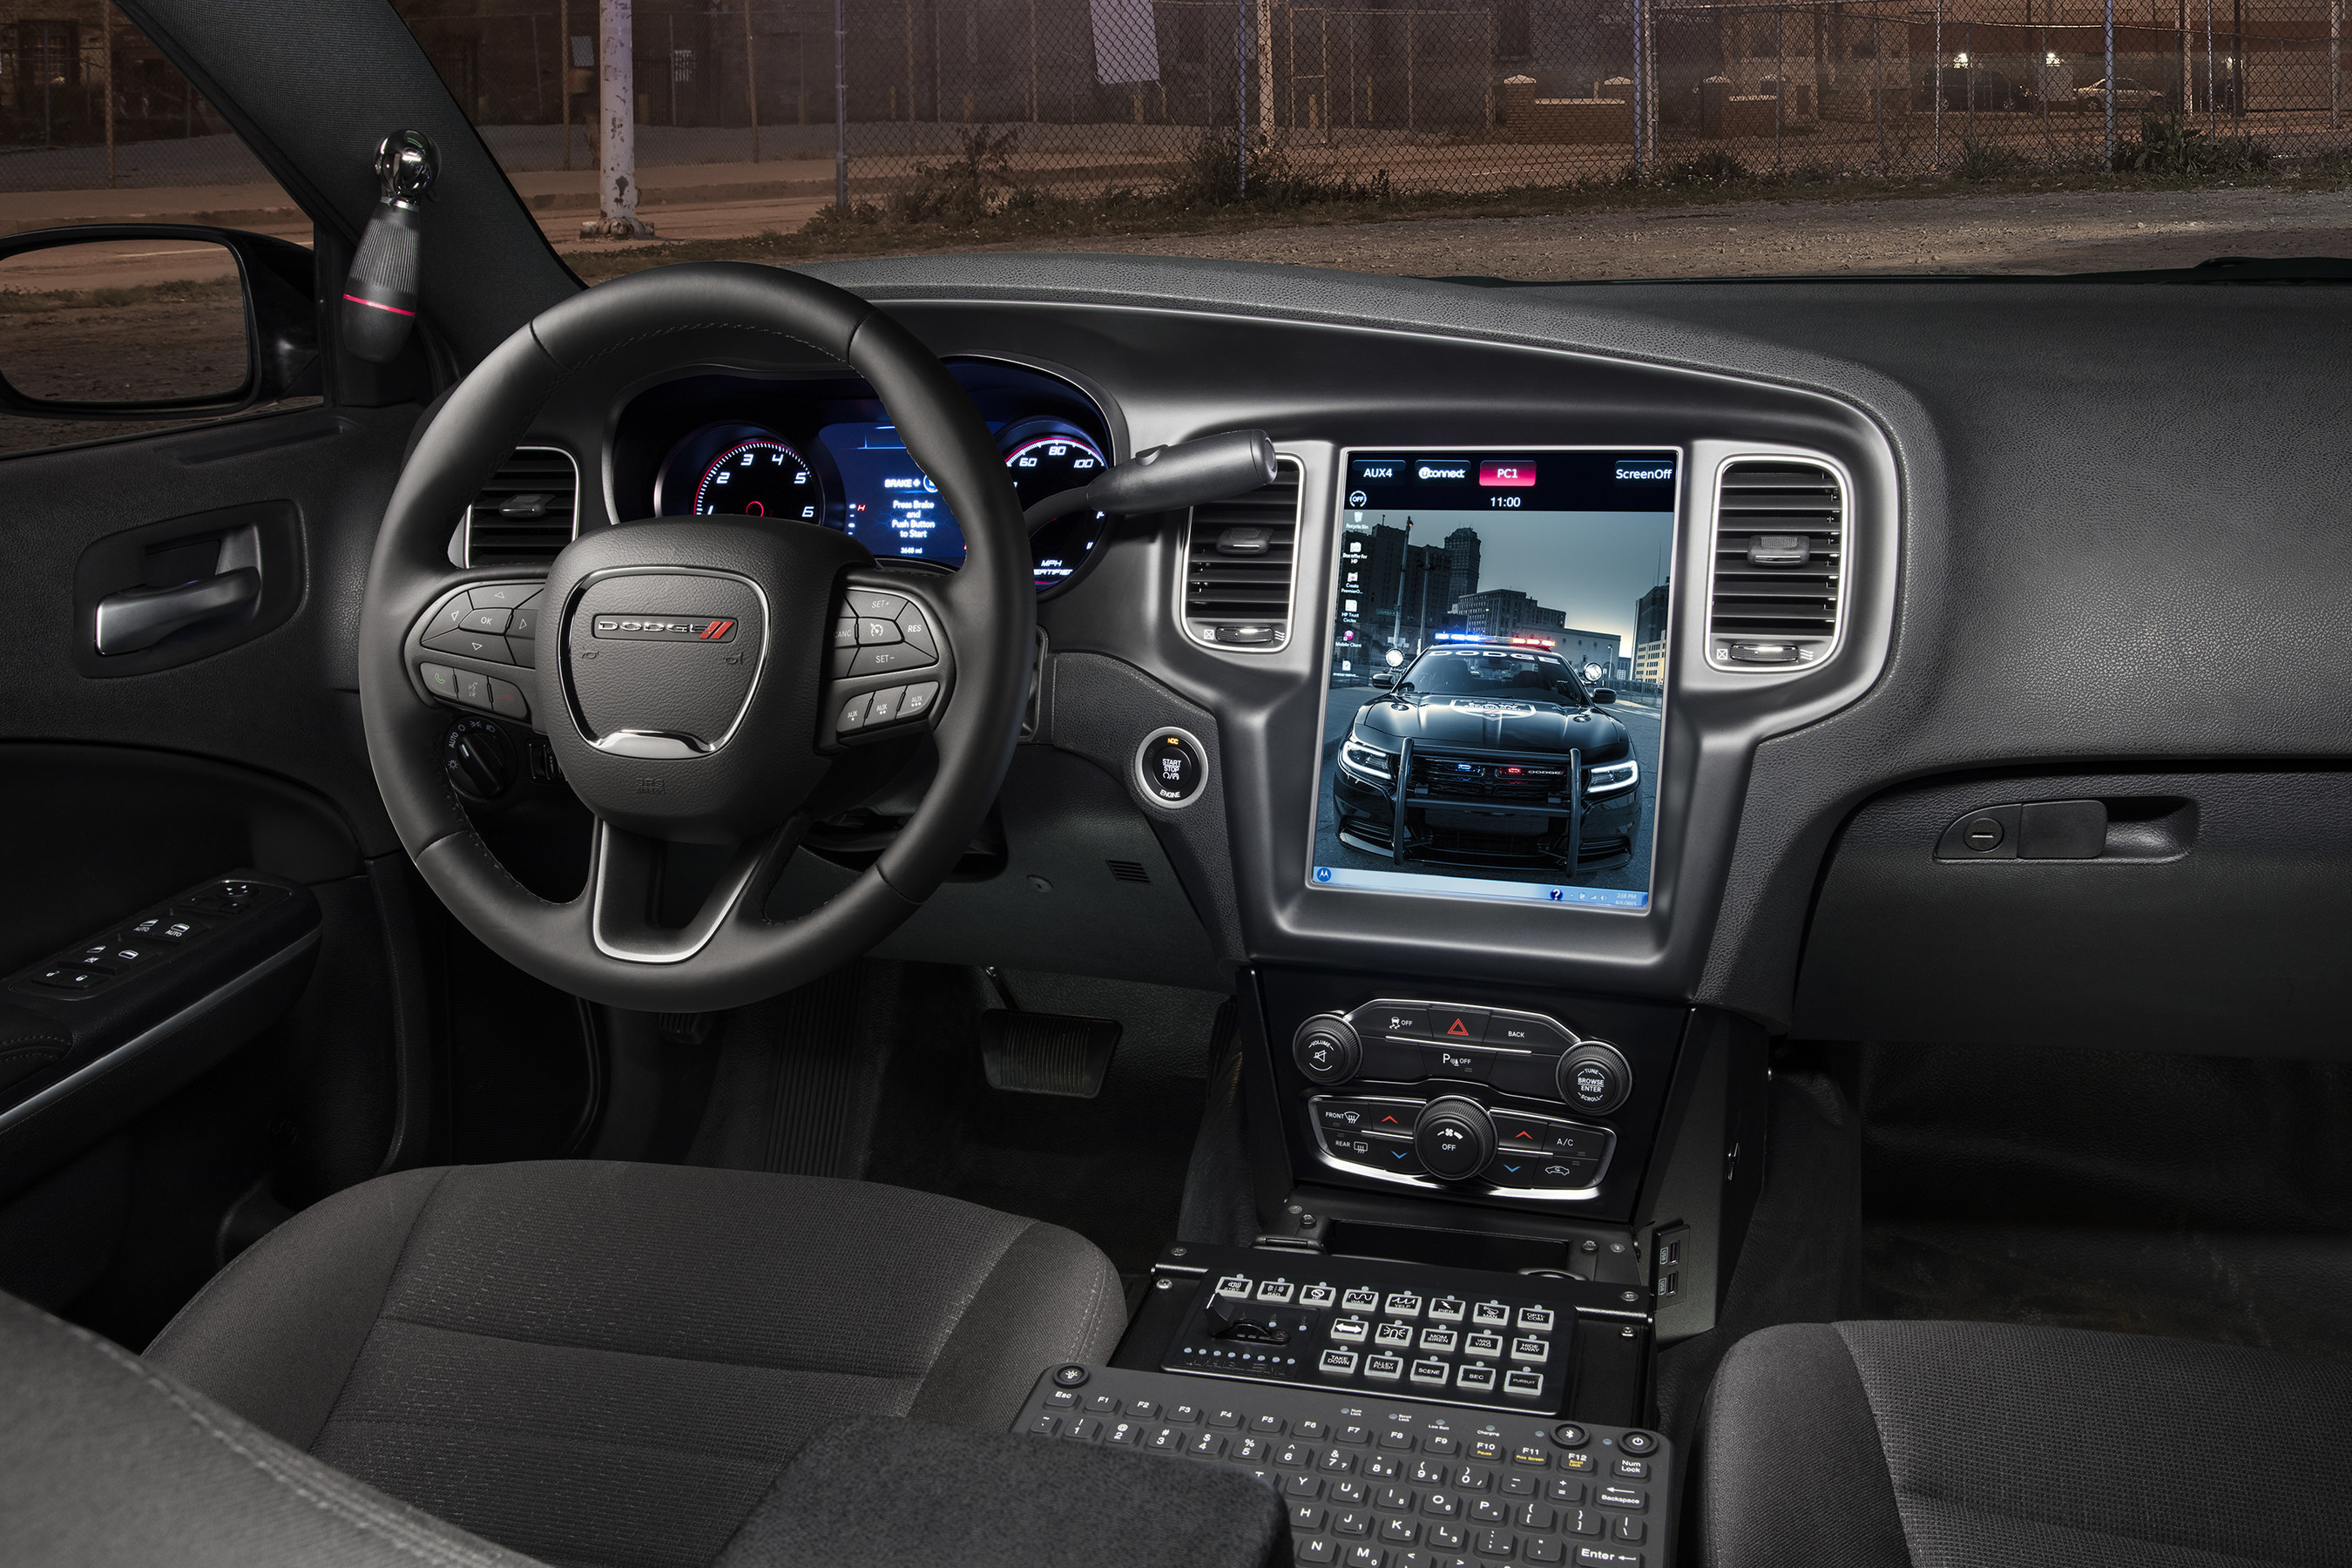 Dodge Goes Big, Leads in Tactical Technology: Laptop-sized 12.1-inch Touchscreen Display Integrates Law Enforcement Systems and Innovative Uconnect Technology on 2016 Cha